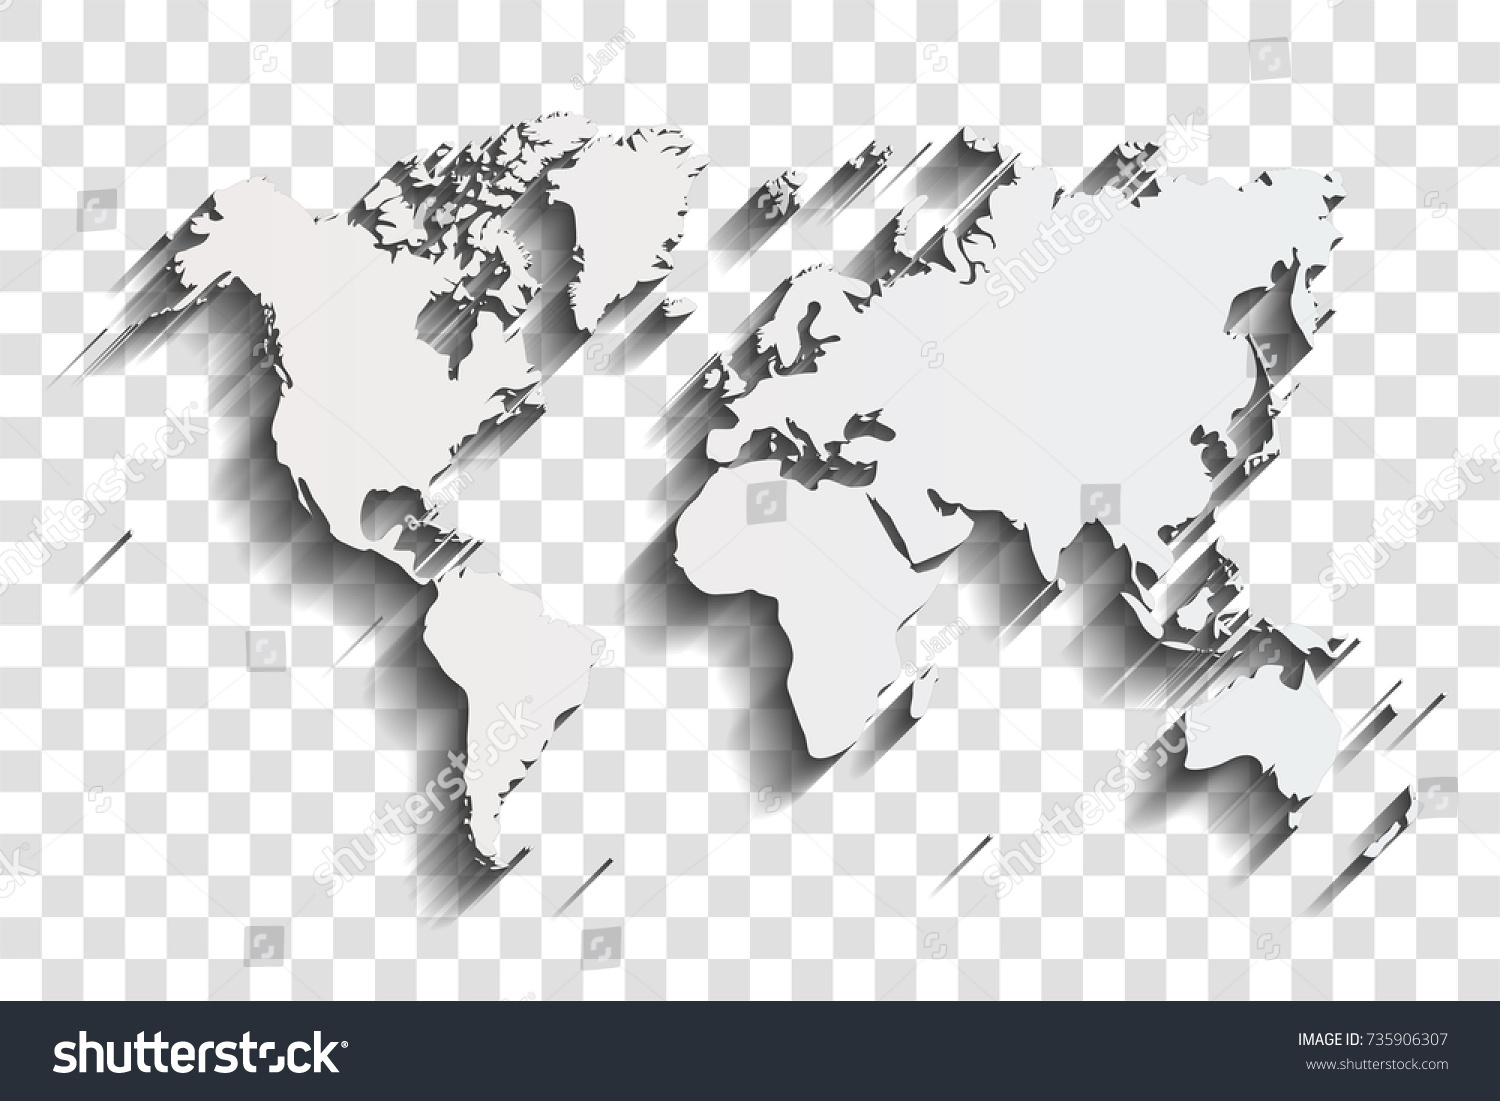 World map shadow on transparent background stock vector 735906307 world map with shadow on a transparent background gumiabroncs Images